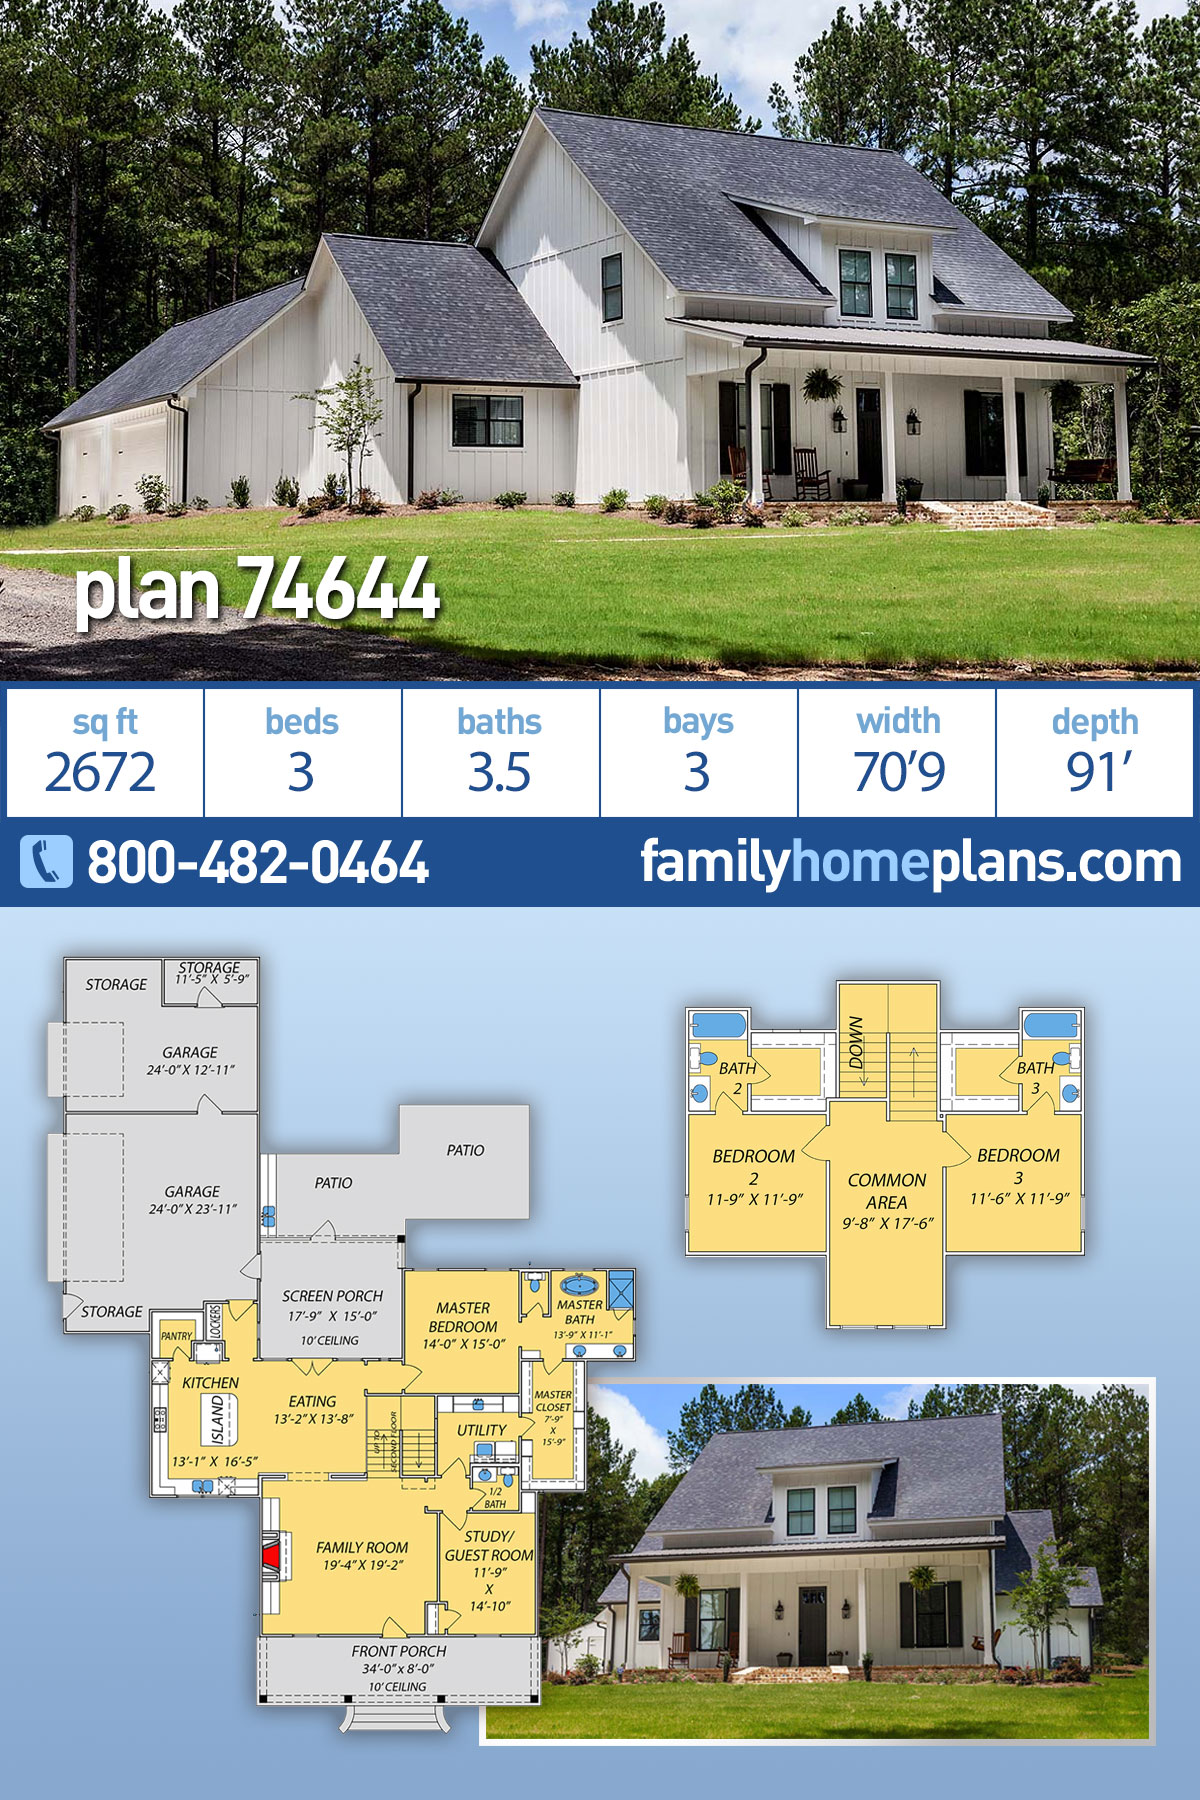 Farmhouse, Southern, Traditional House Plan 74644 with 3 Beds, 4 Baths, 3 Car Garage